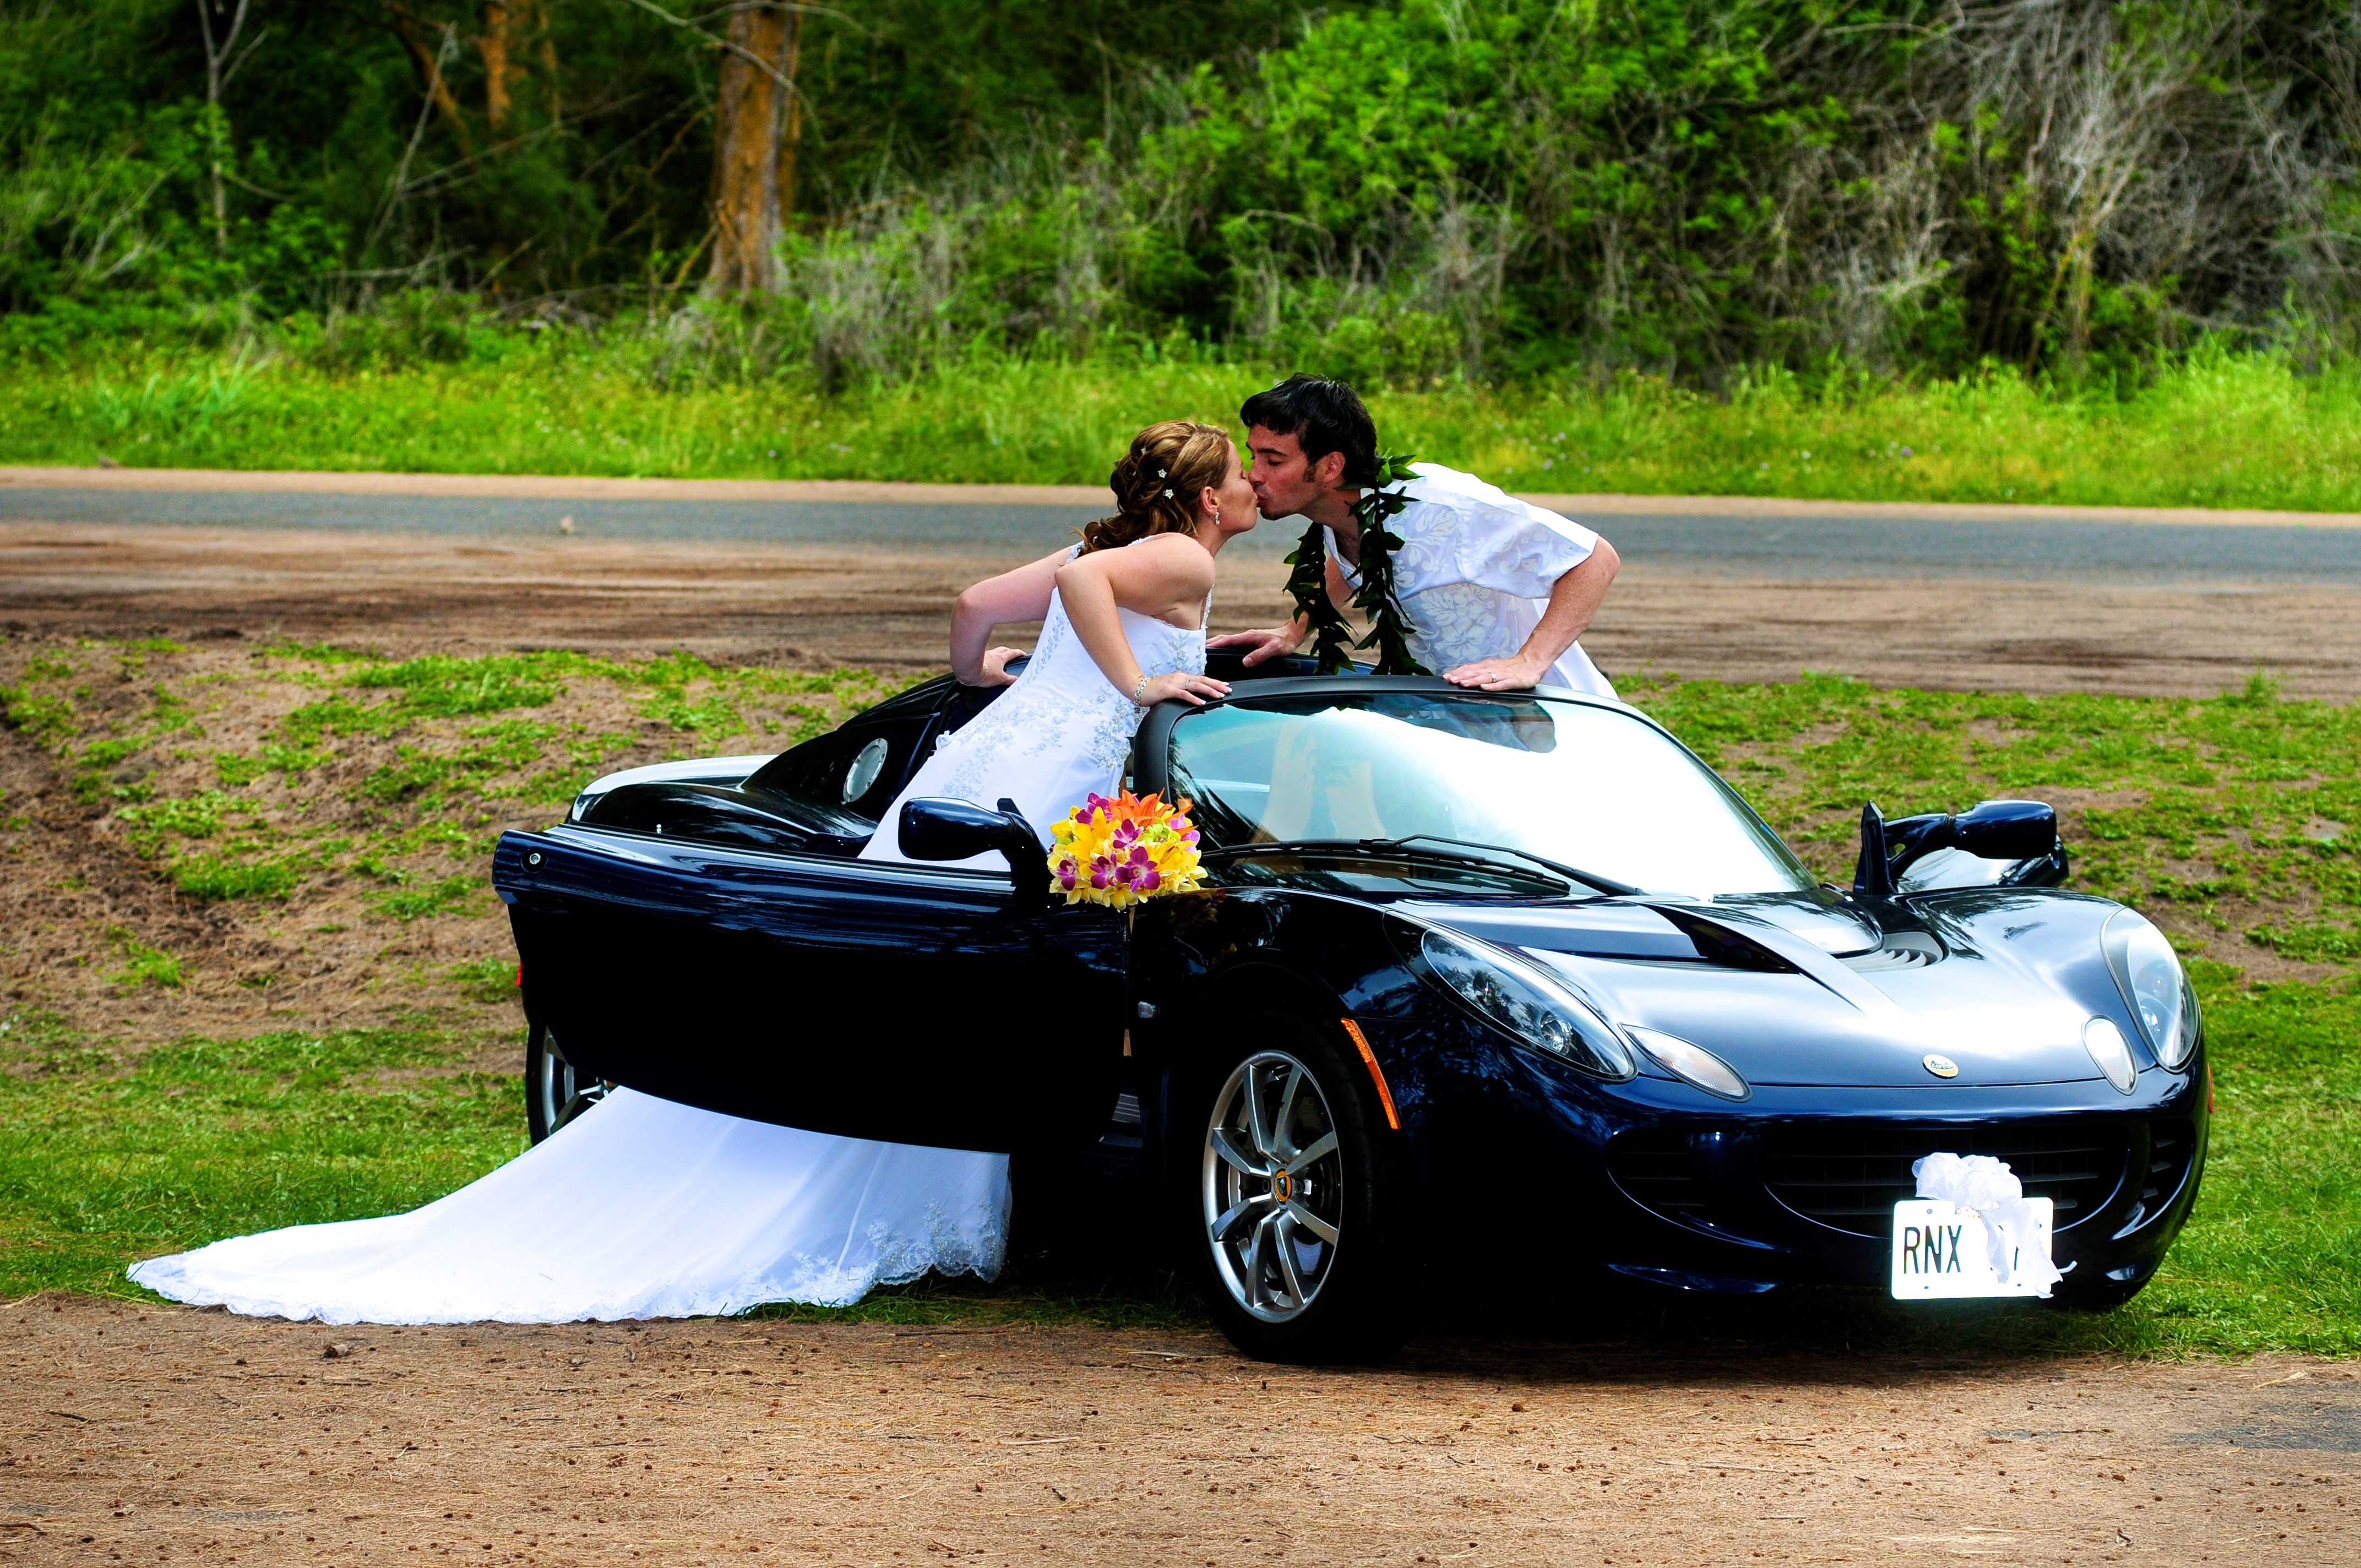 alohaislandweddings- Lotus car -28